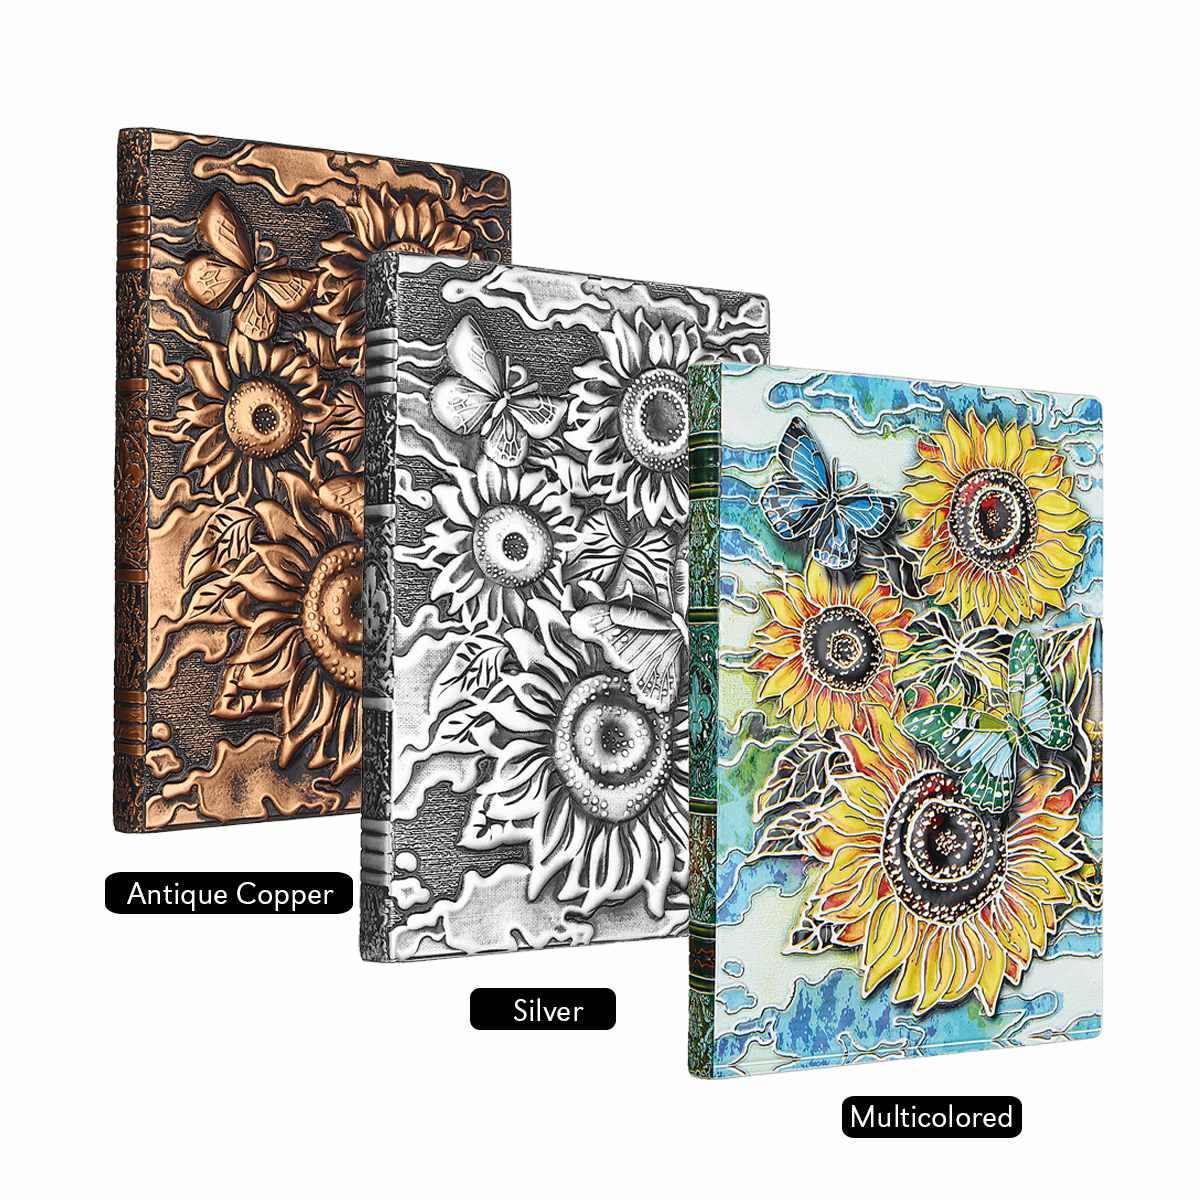 Vintage 3D Printing Embossed Notebook Sunflower Travel Diary Notebook Journal Leather Gift Bible Book Handcraft